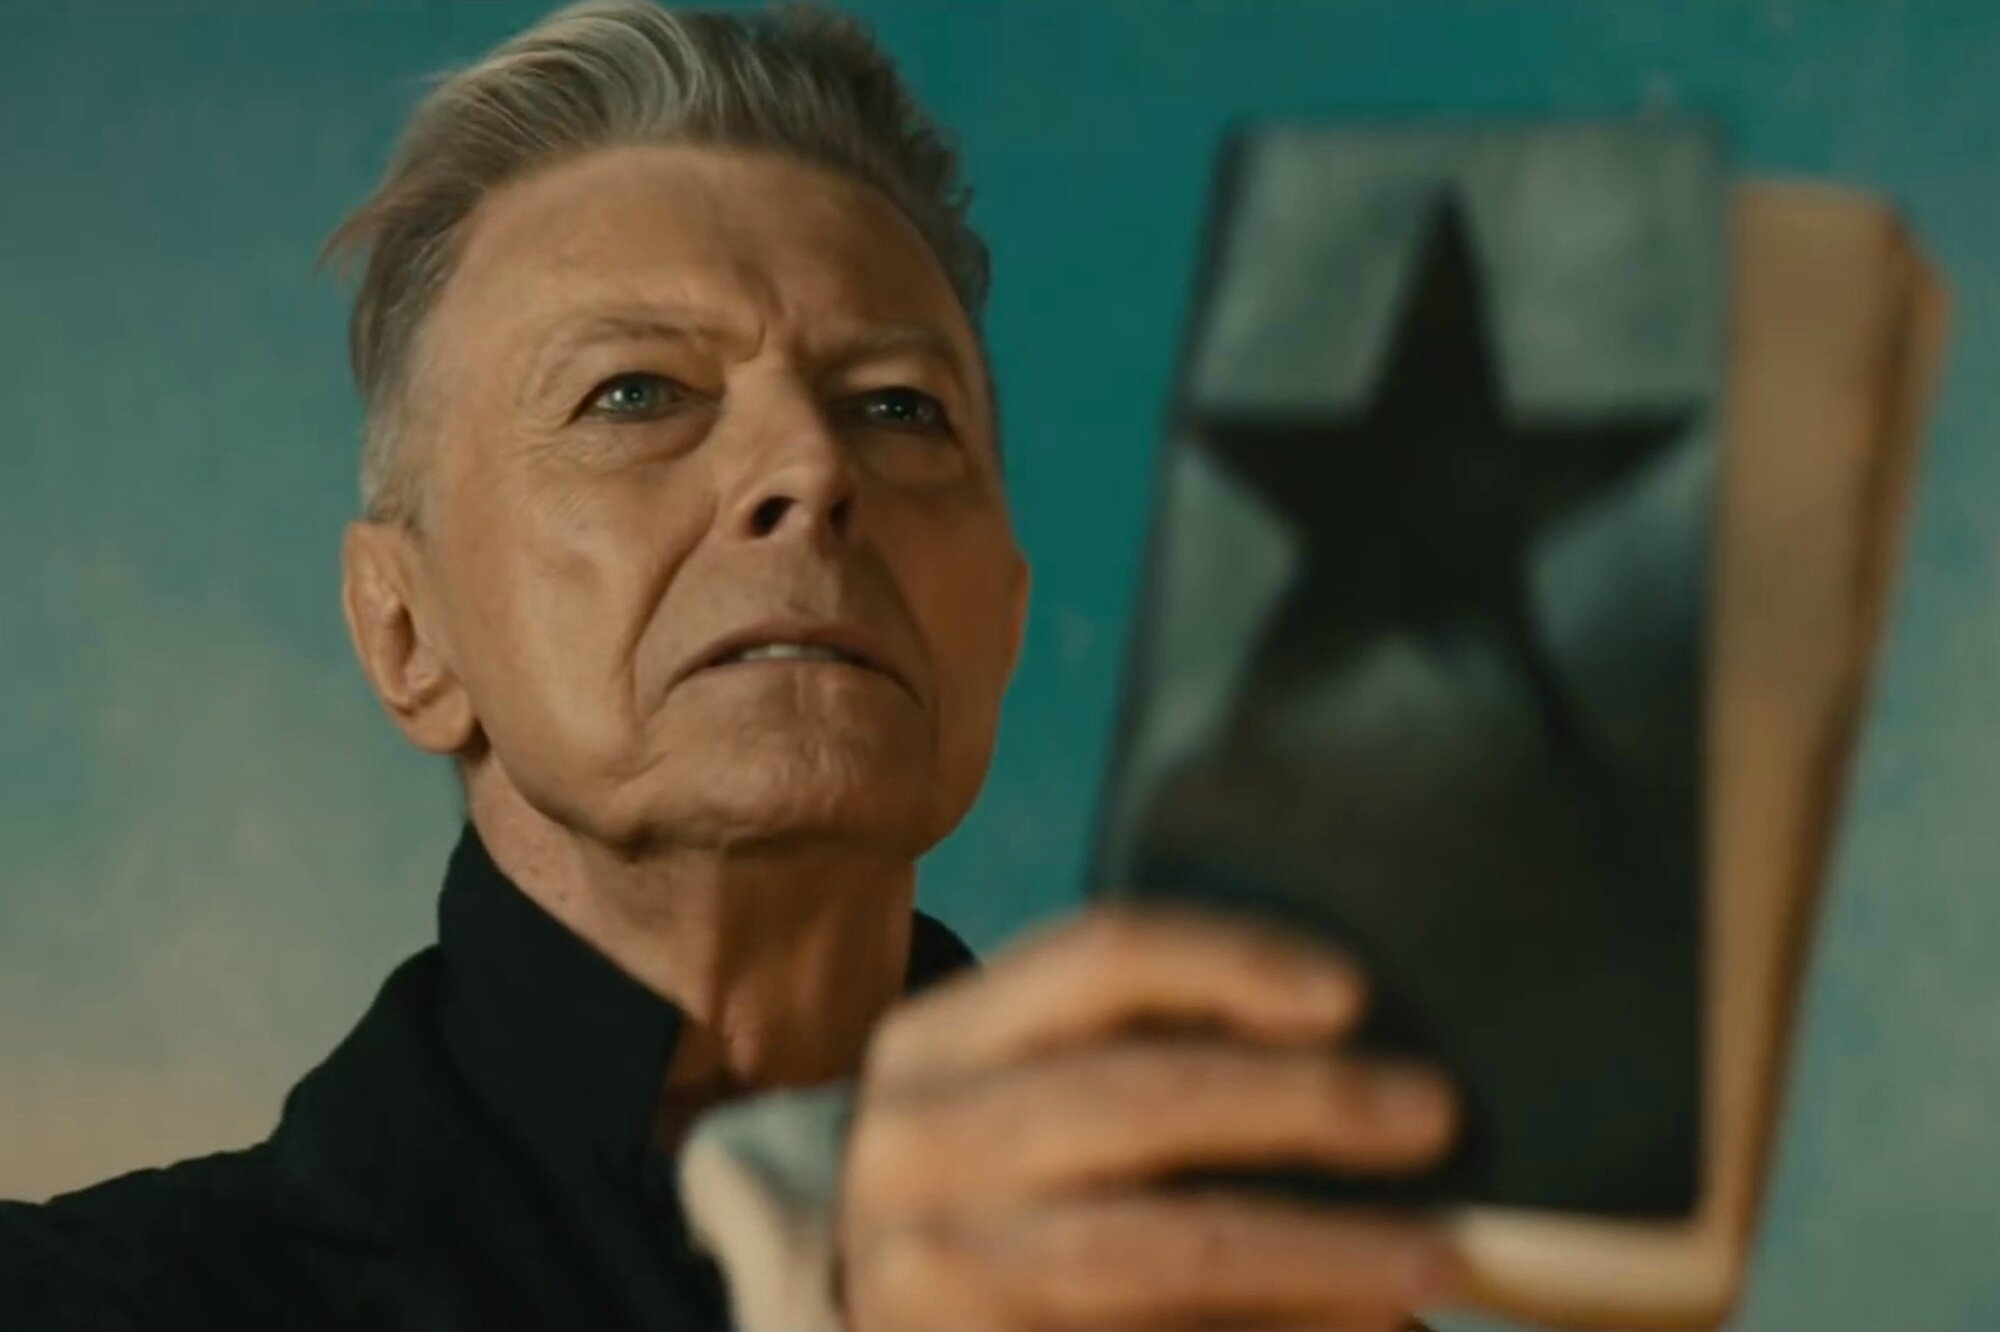 David Bowie Illuminati sacrifice, Antichrist Blackstar Album